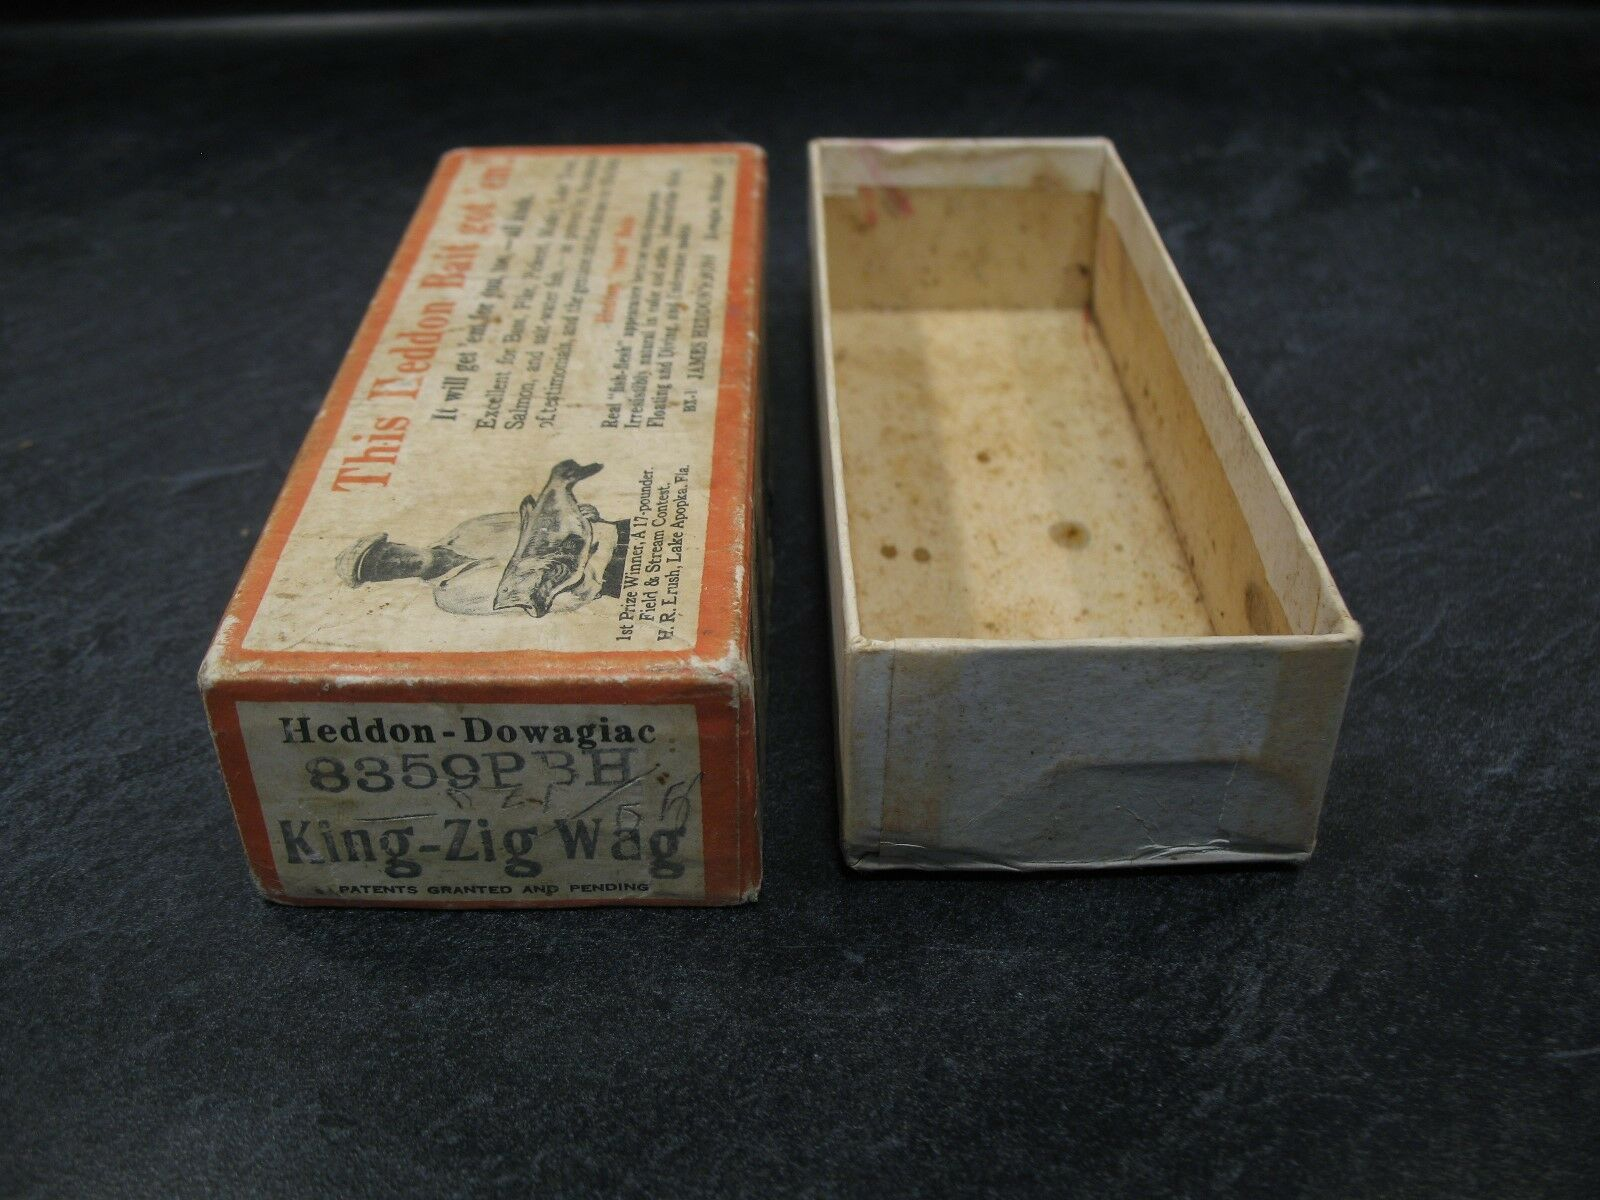 HEDDON 8359PBH BRUSH BOX (only) KING ZIG-WAG  blueE HERRING  Fishing Lure Vintage